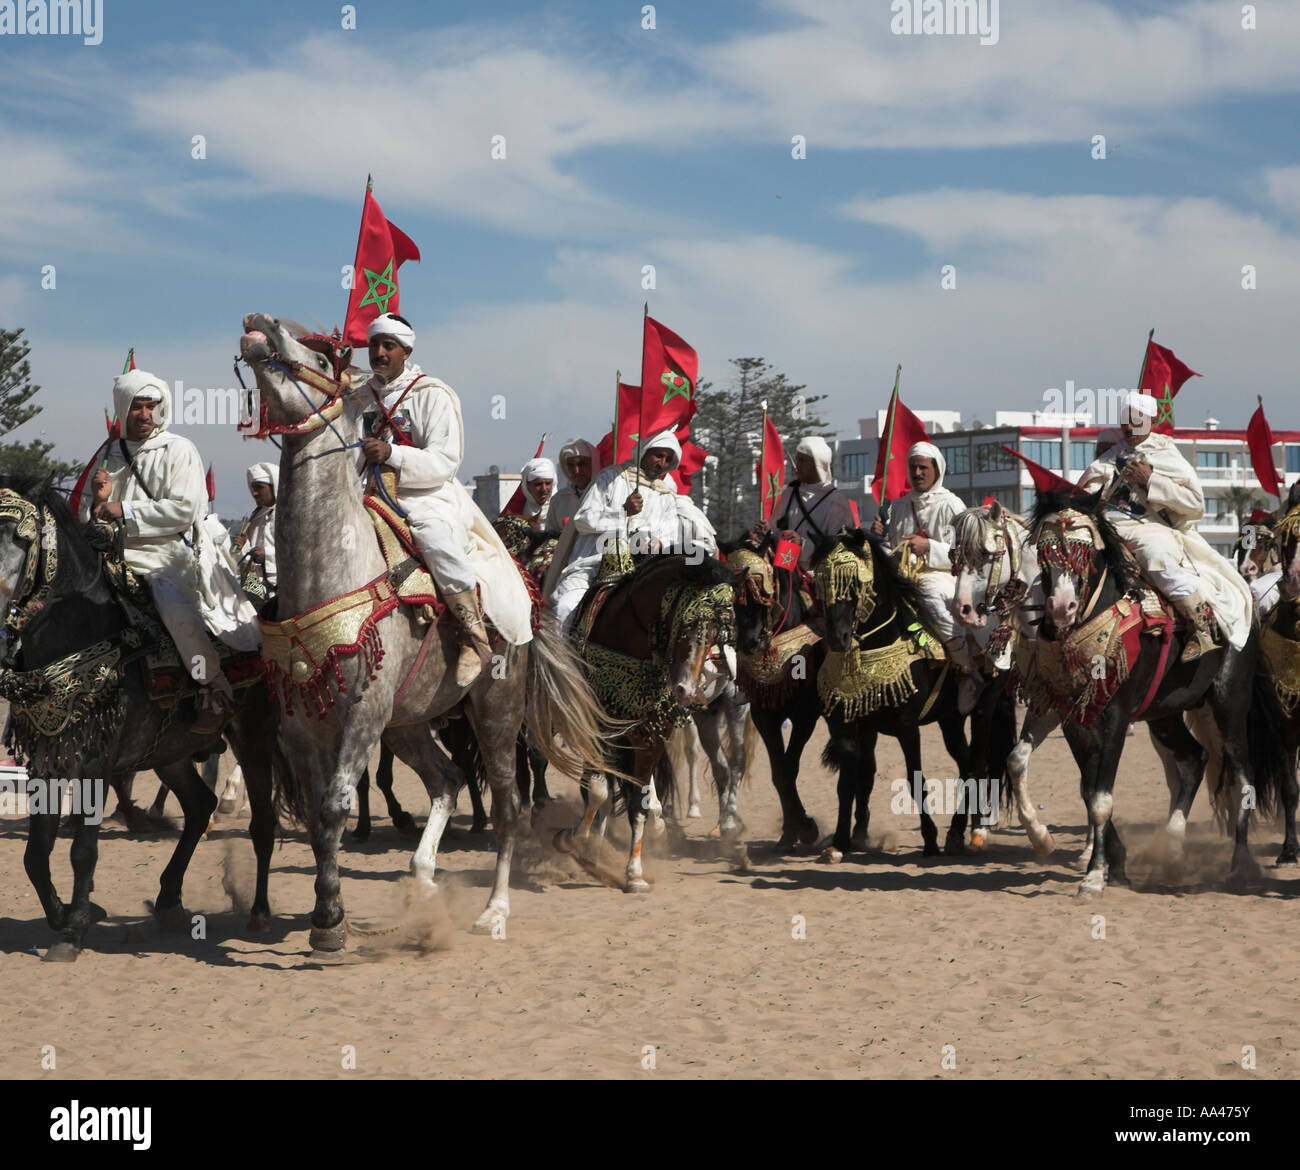 Horsemen In White Robes With Red Star National Flags On The Beach Stock Photo Alamy